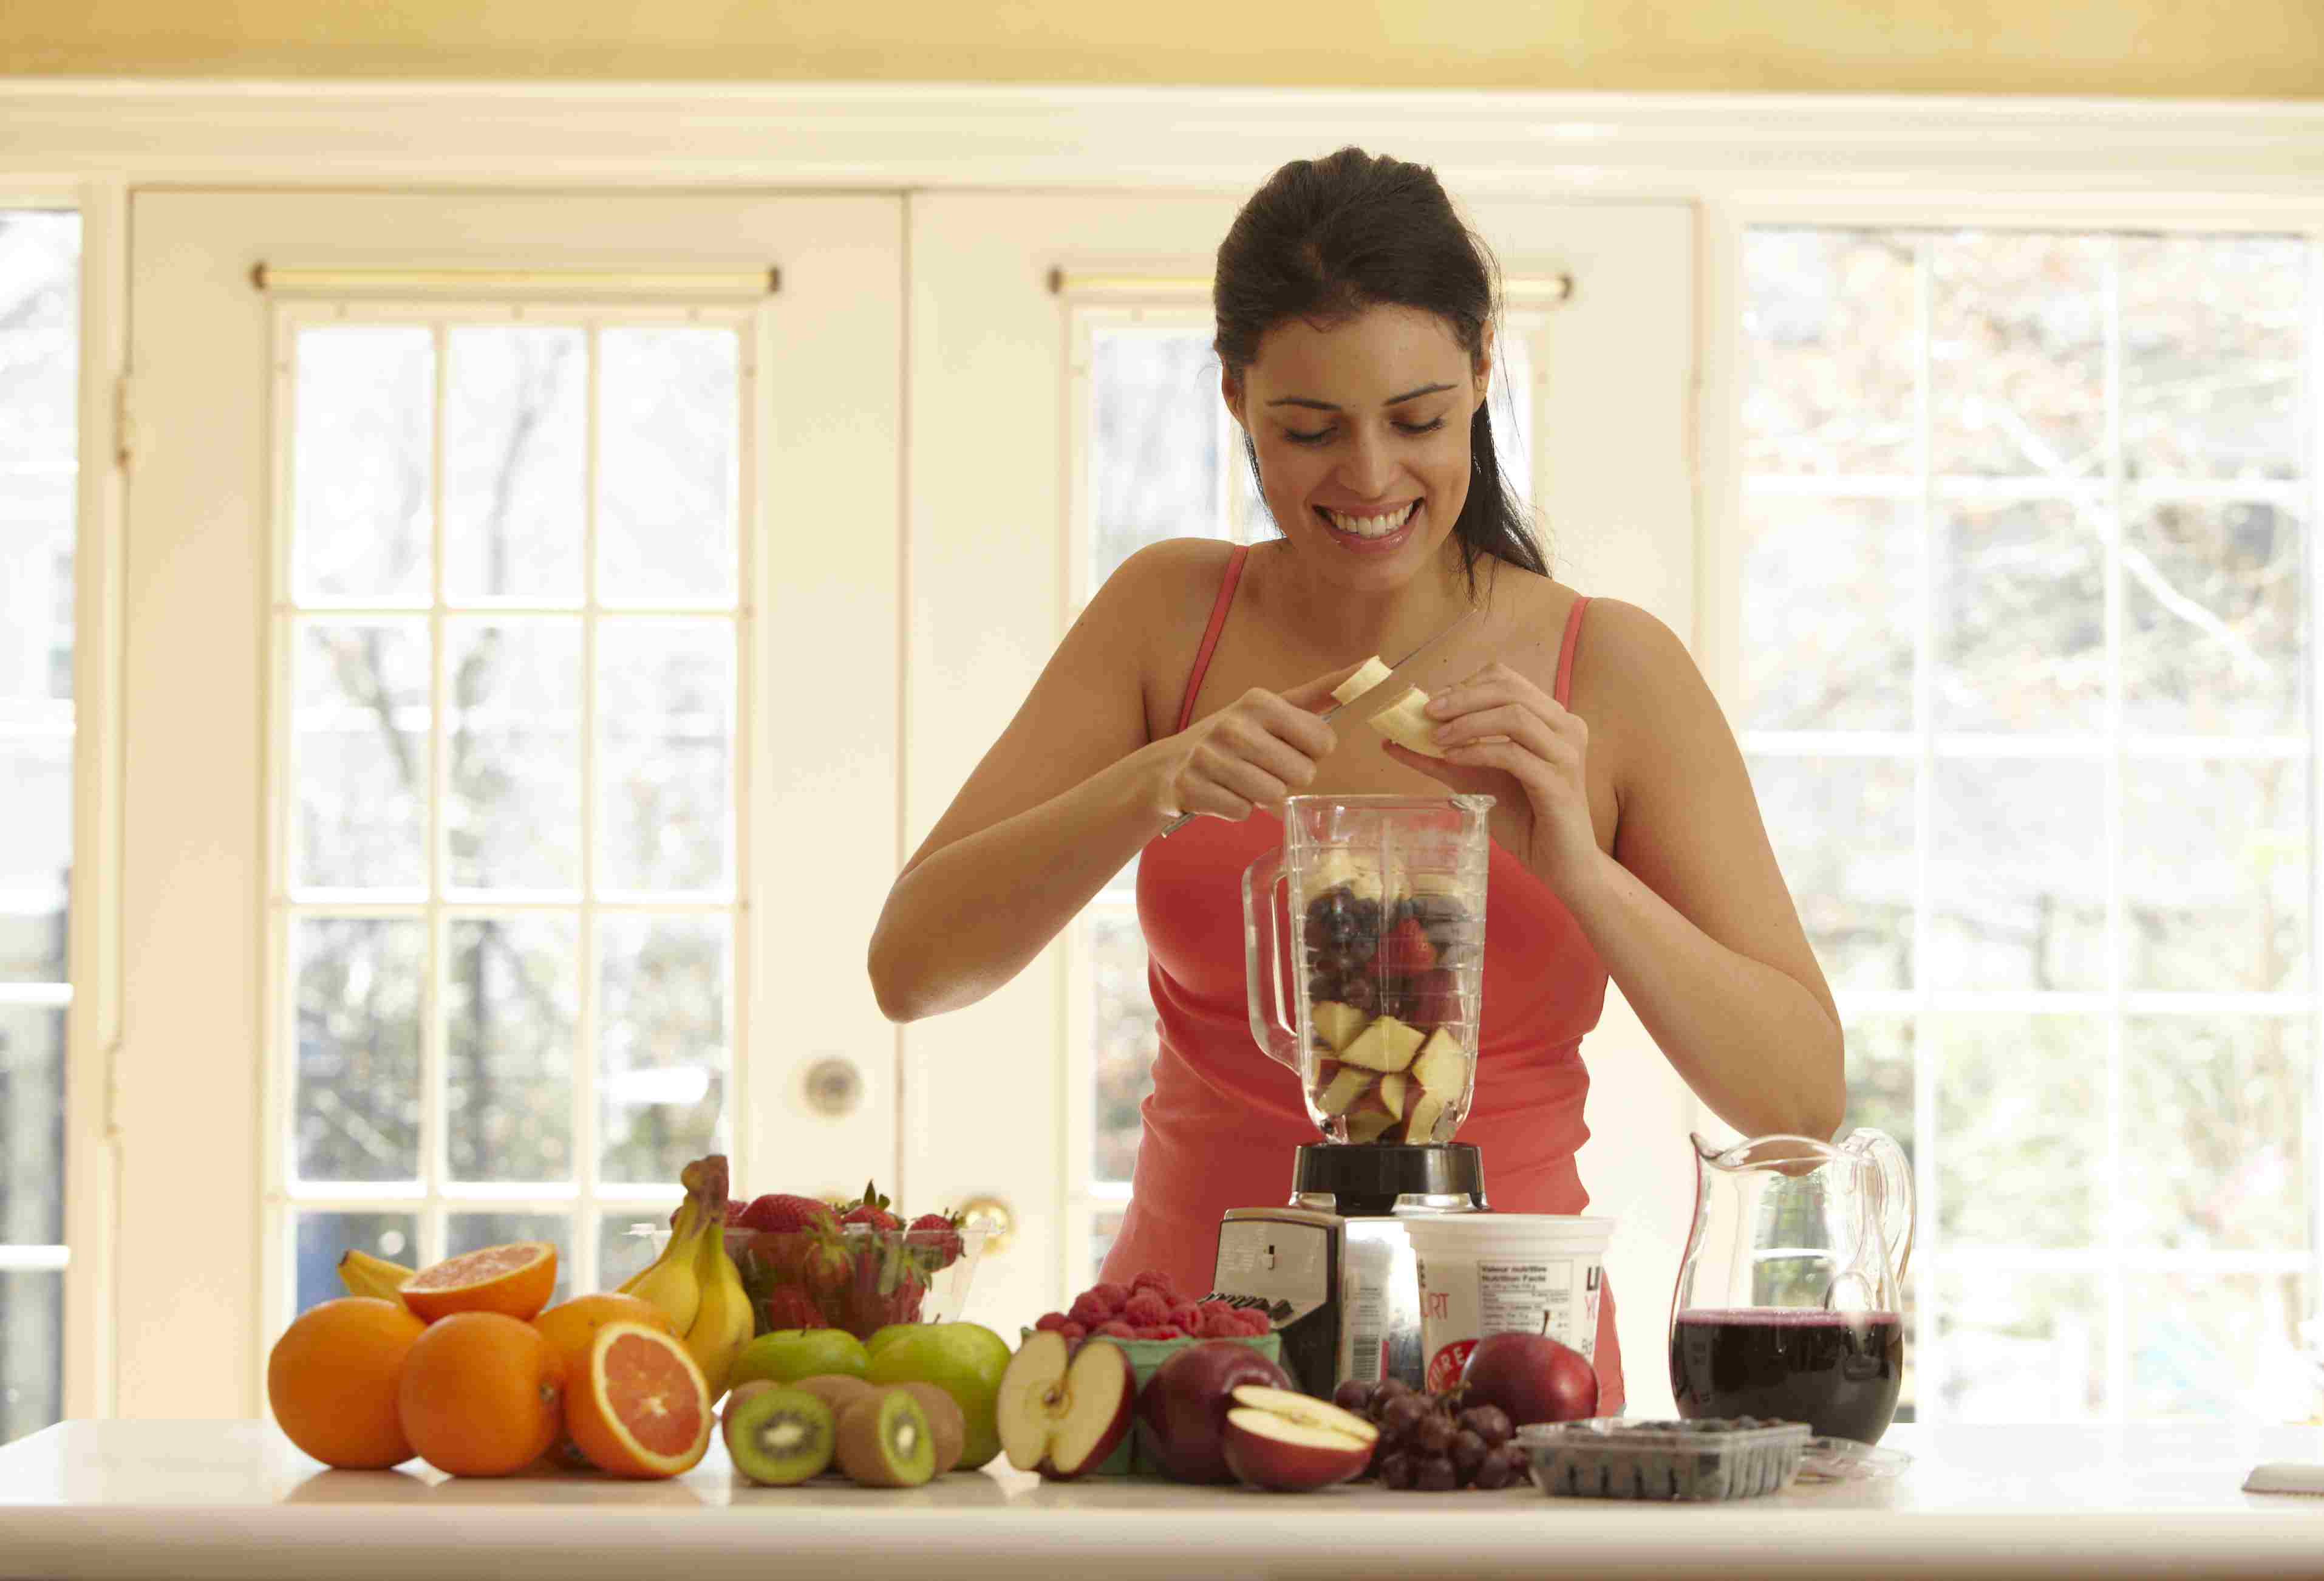 Make a smoothie to get more fruit in your diet.